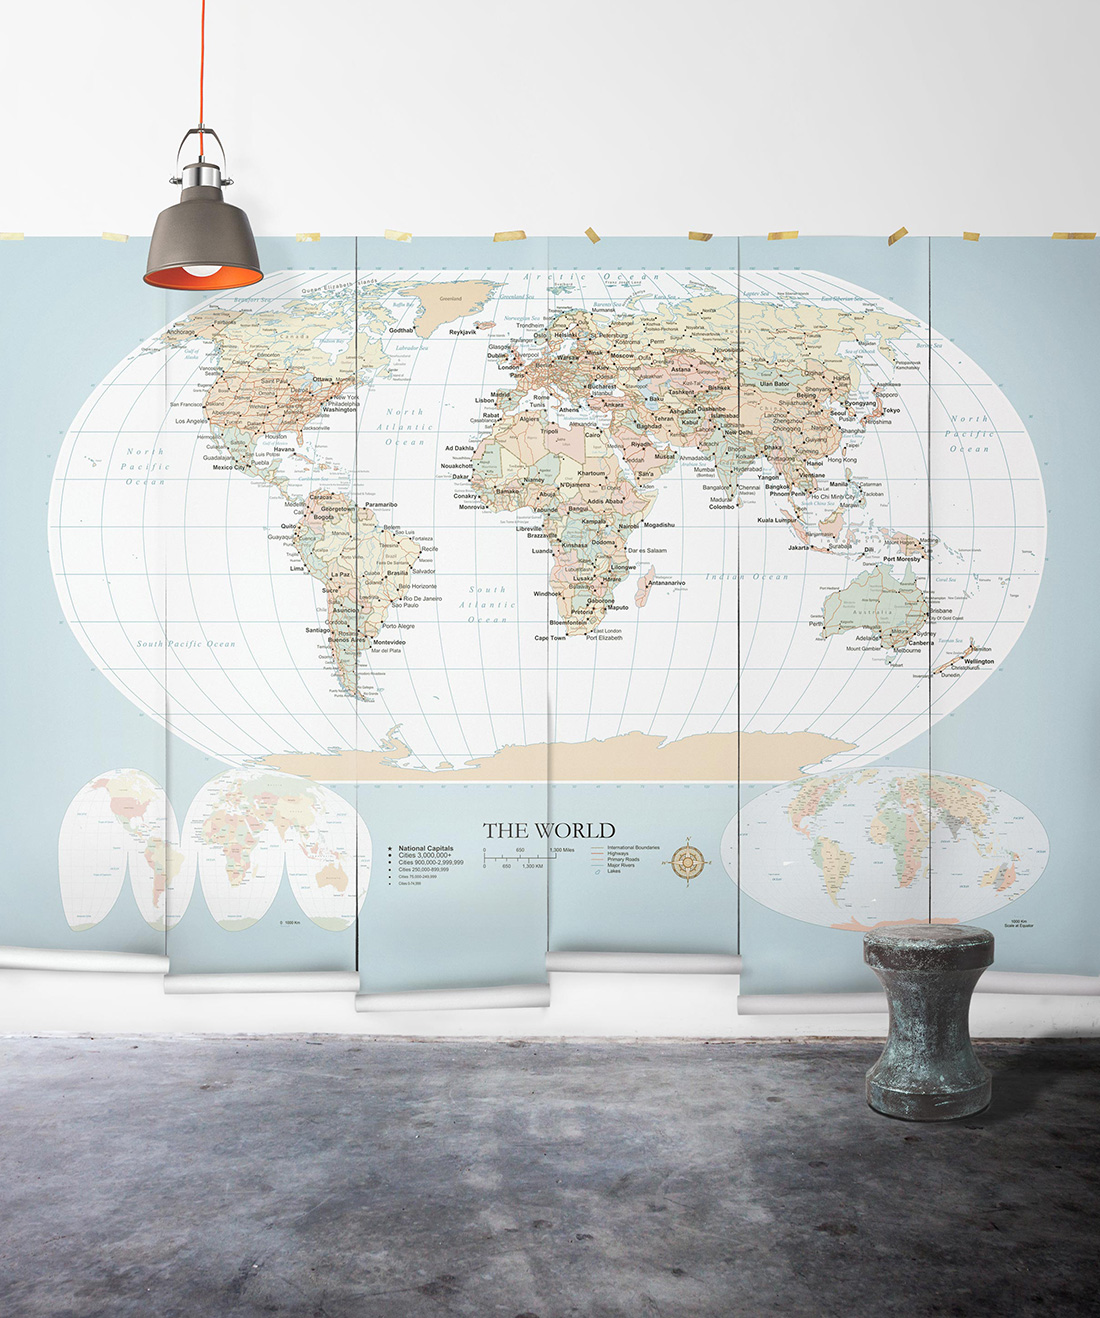 World Map Removable Mural • Explore the World • Milton & King on map tiles, map of america, map art ideas, map canvas painting, map wallpaper, map posters, map craft projects, map tattoo designs, map t-shirt designs, map border designs, map book covers, map wall decal, map still life, map wall art,